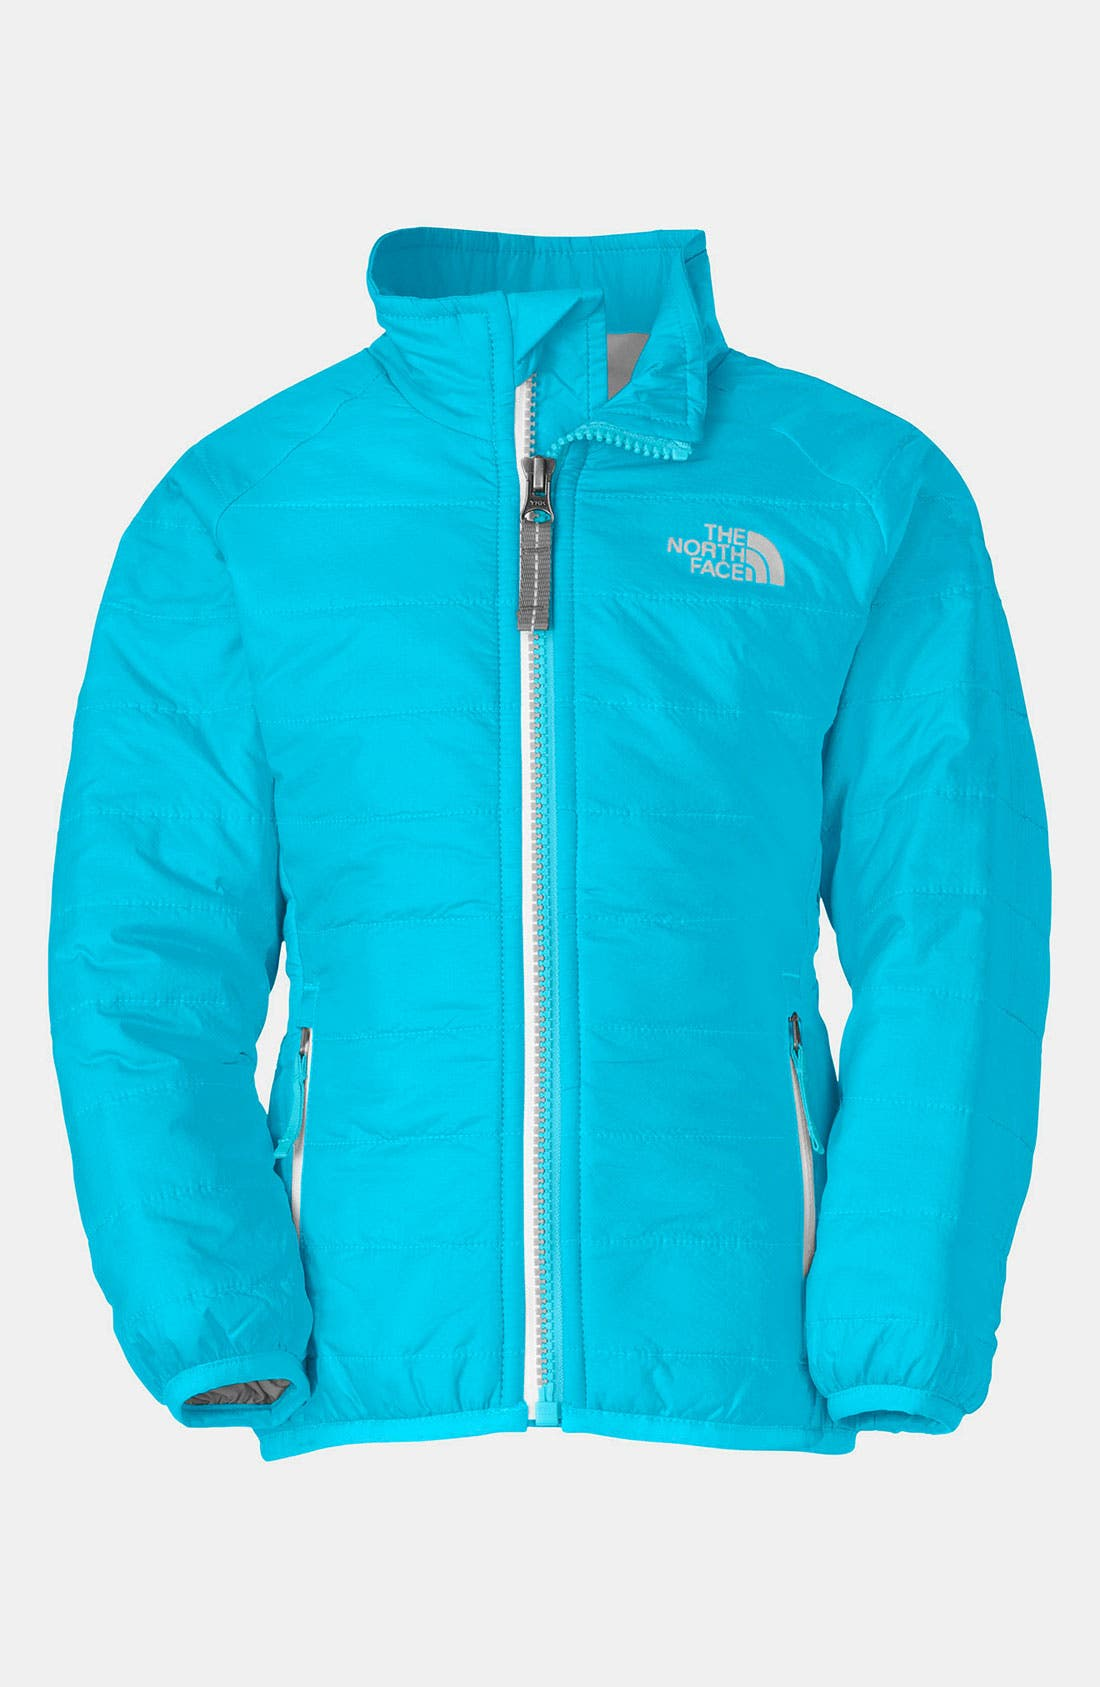 Main Image - The North Face 'Blaze' Jacket (Toddler)